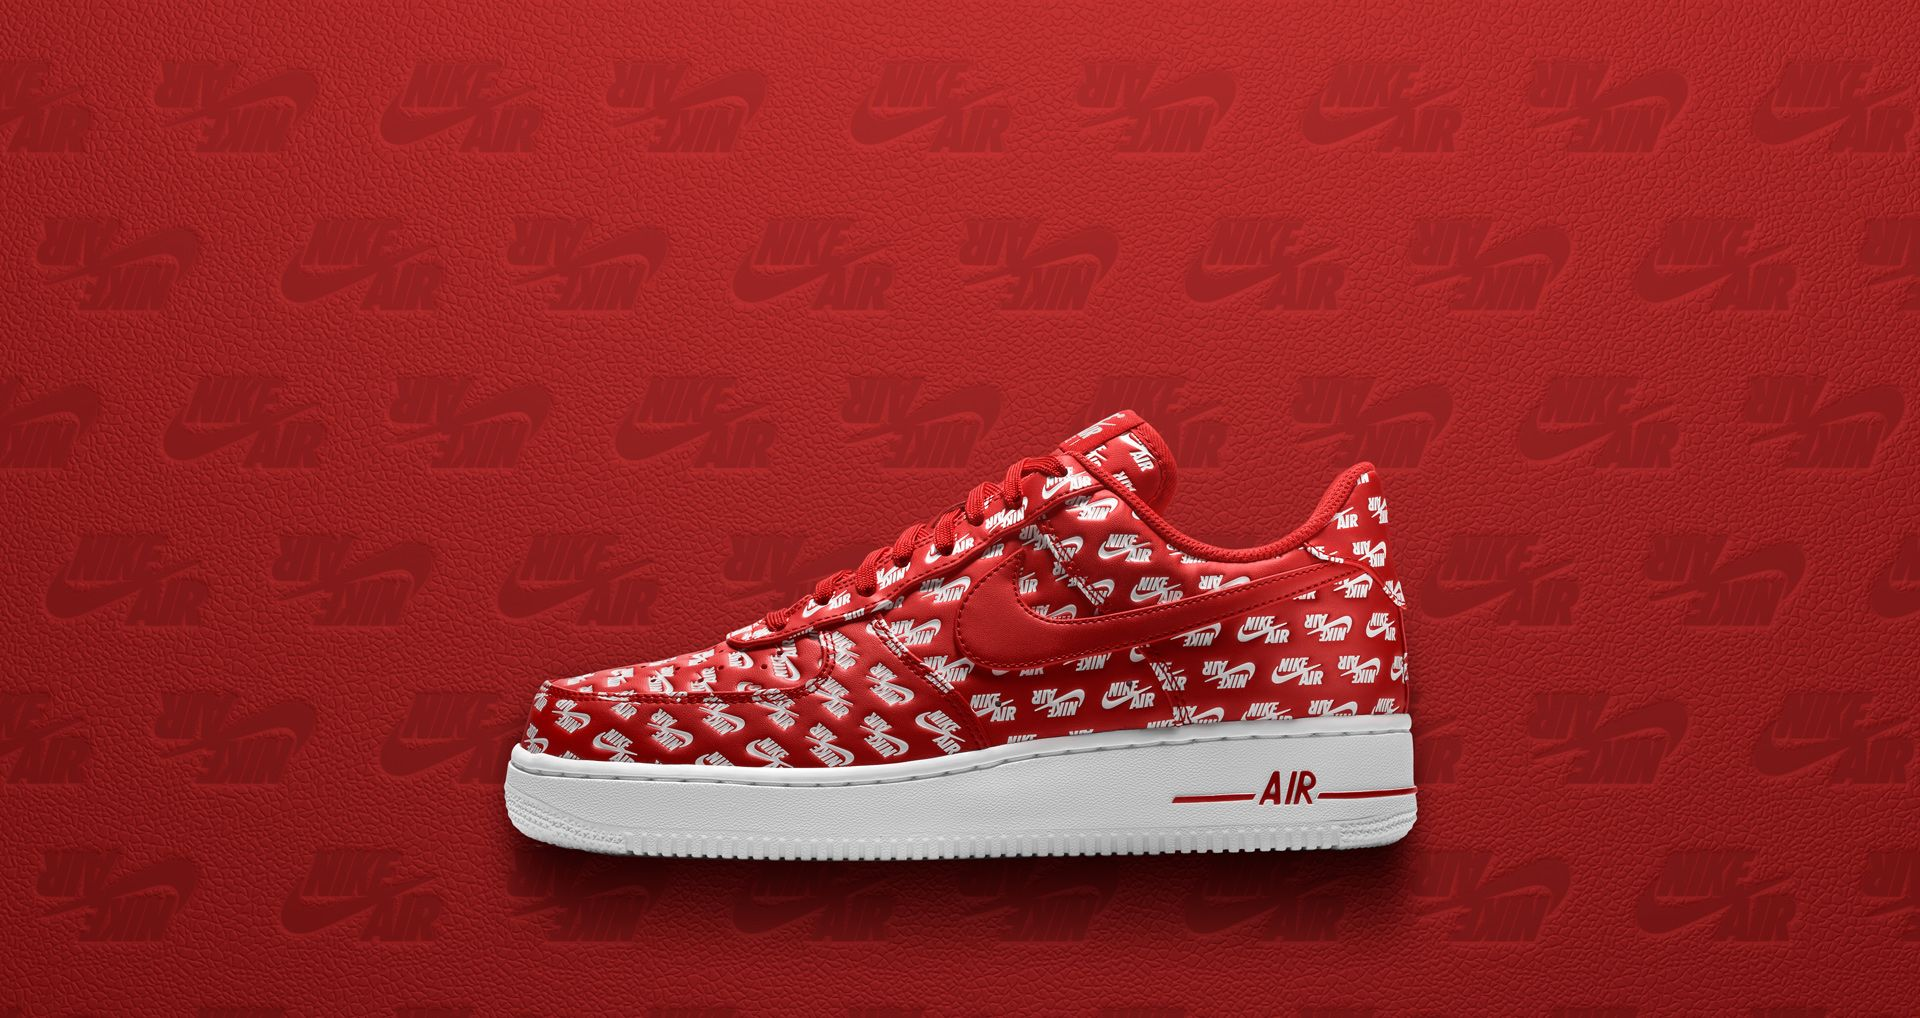 Nike Air Force 1  07  University Red   White  Release Date. Nike⁠+ SNKRS 8e179c172